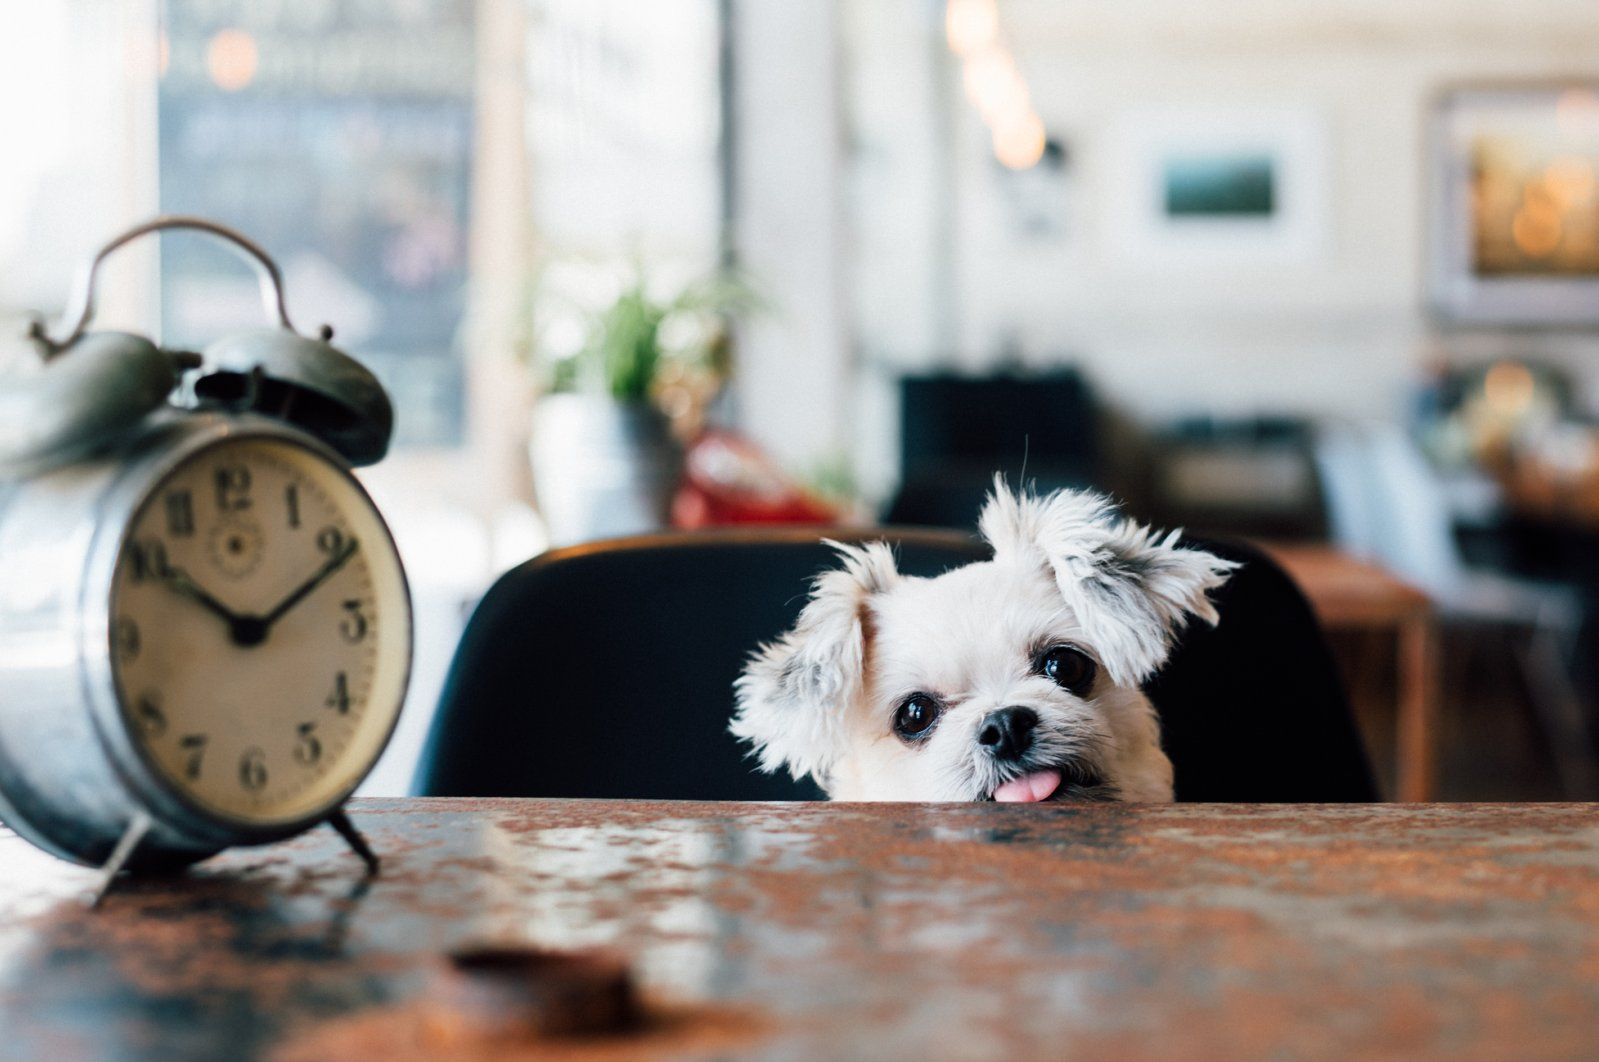 Over time, daylight saving time messes with our body clock and can trigger cardiac problems. (iStock Photo)